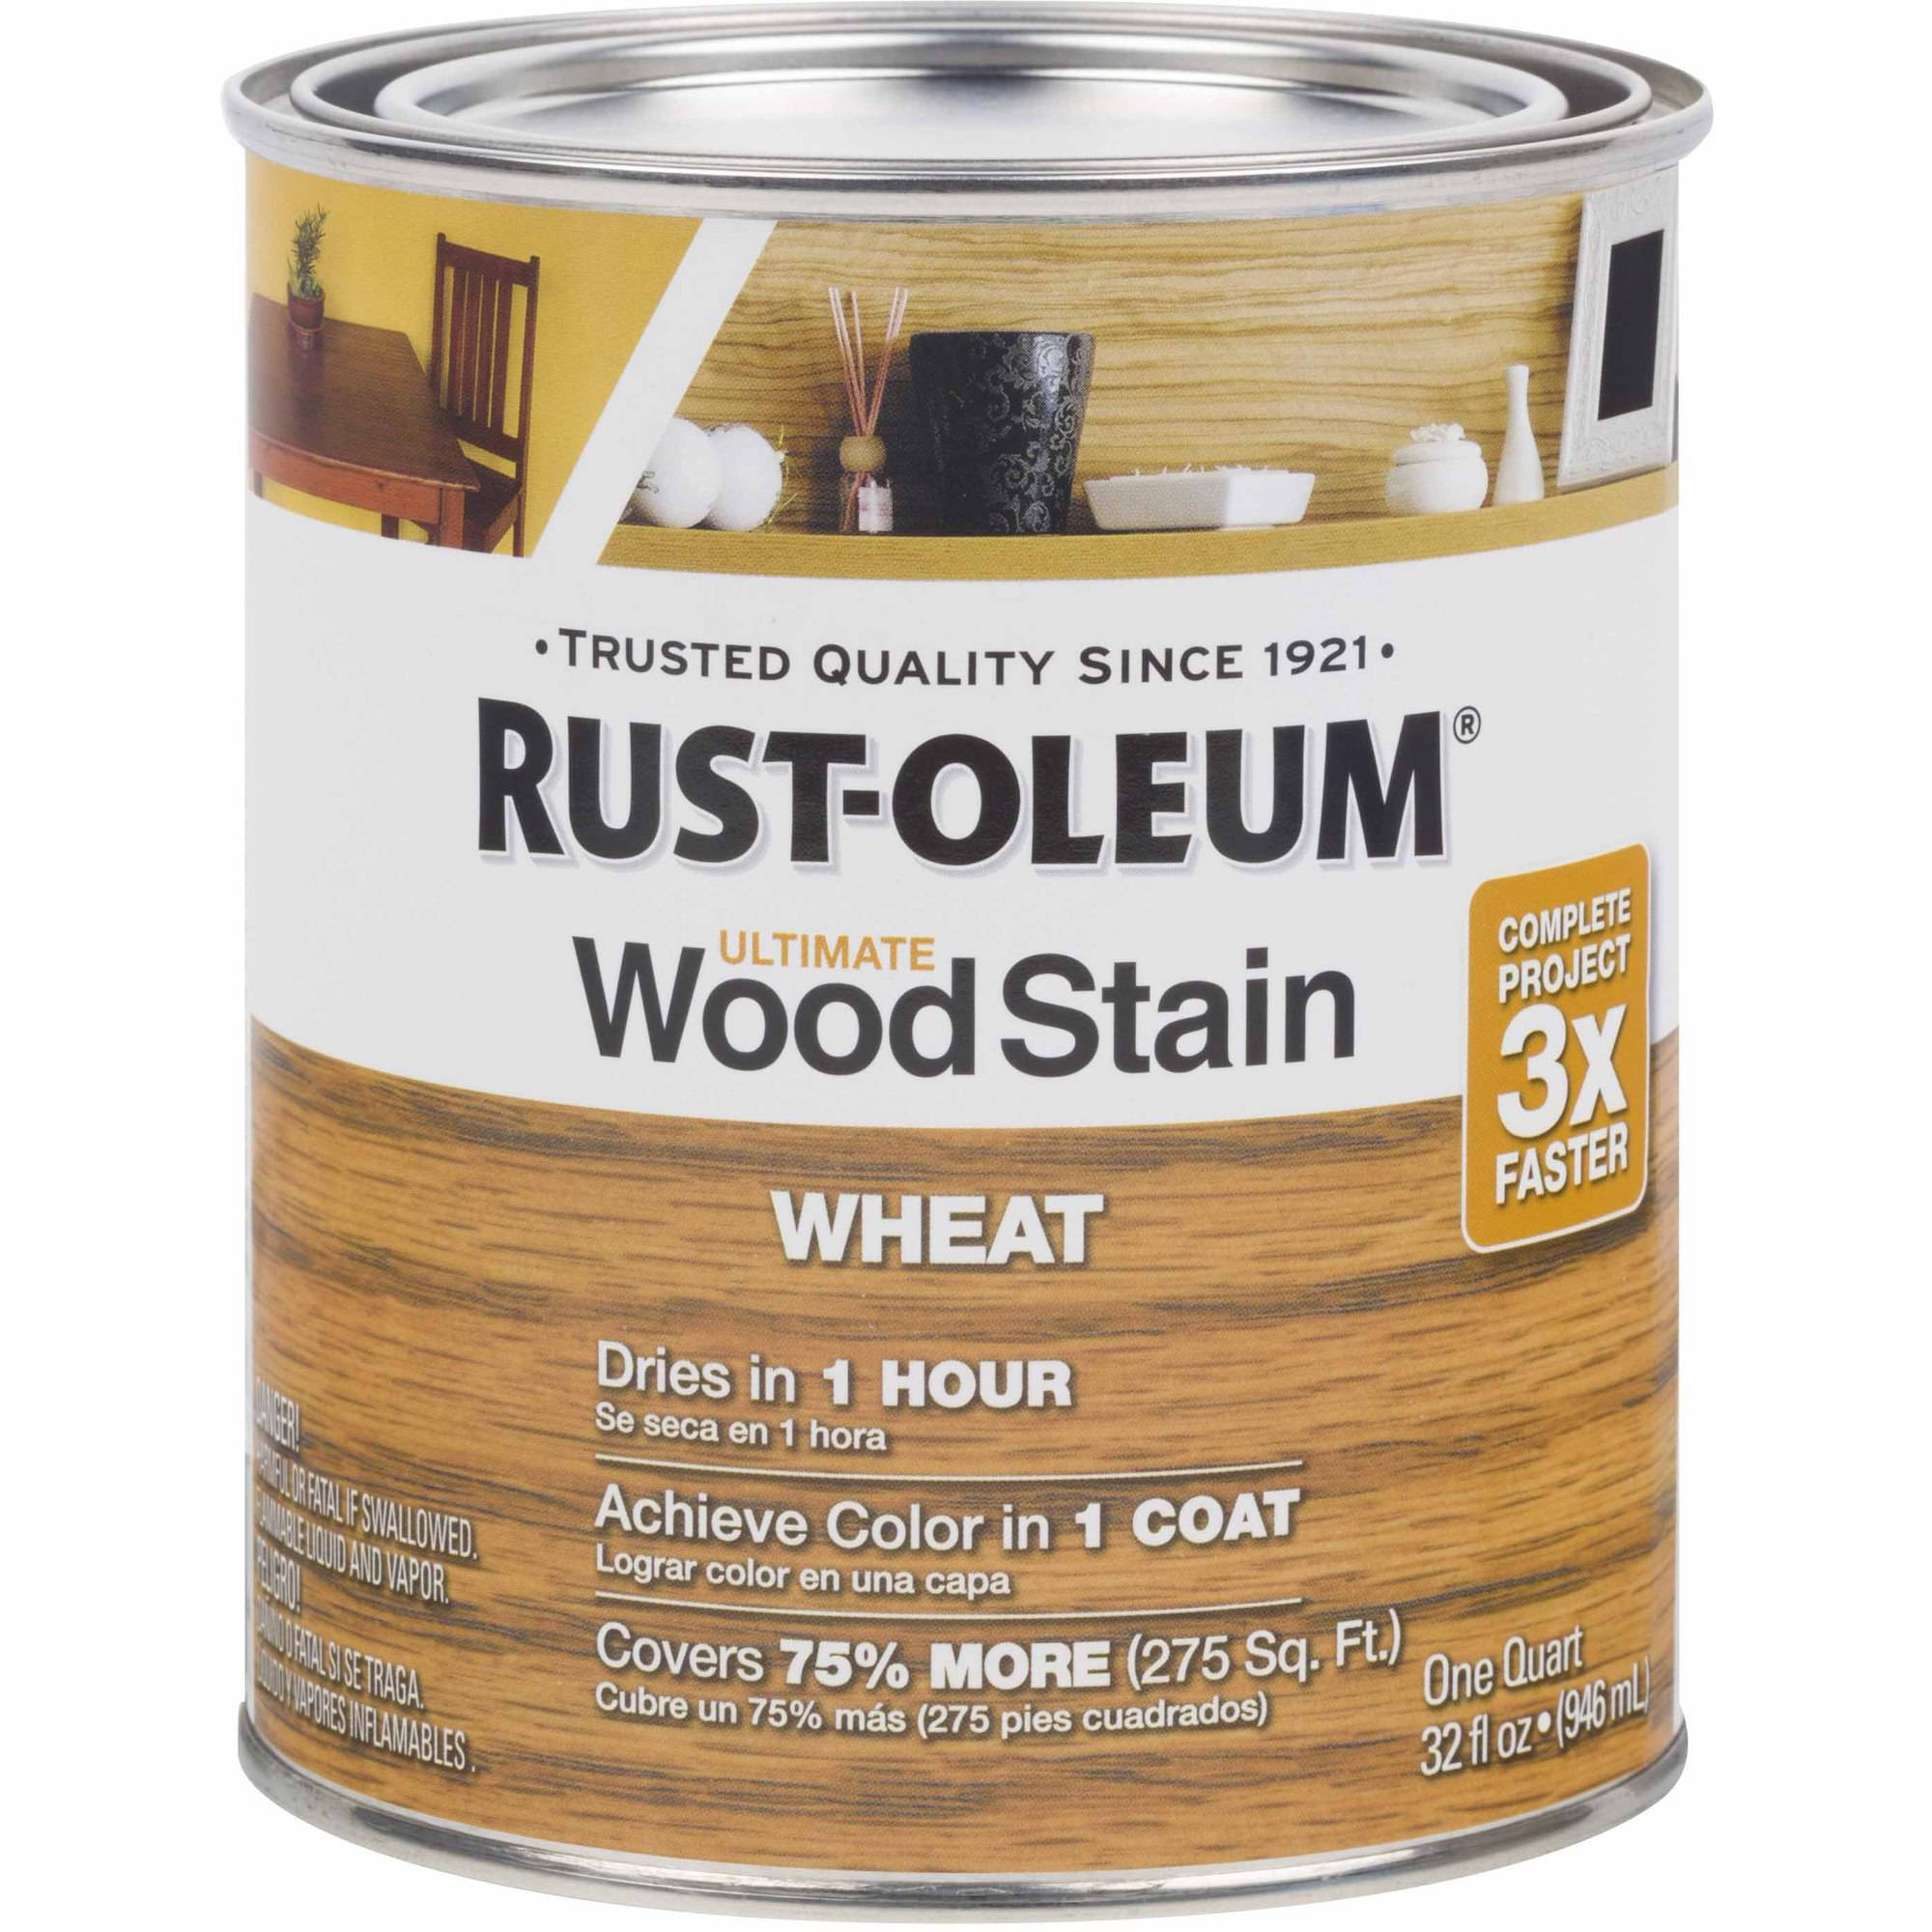 Rust-Oleum Ultimate Wood Stain Quart, Wheat